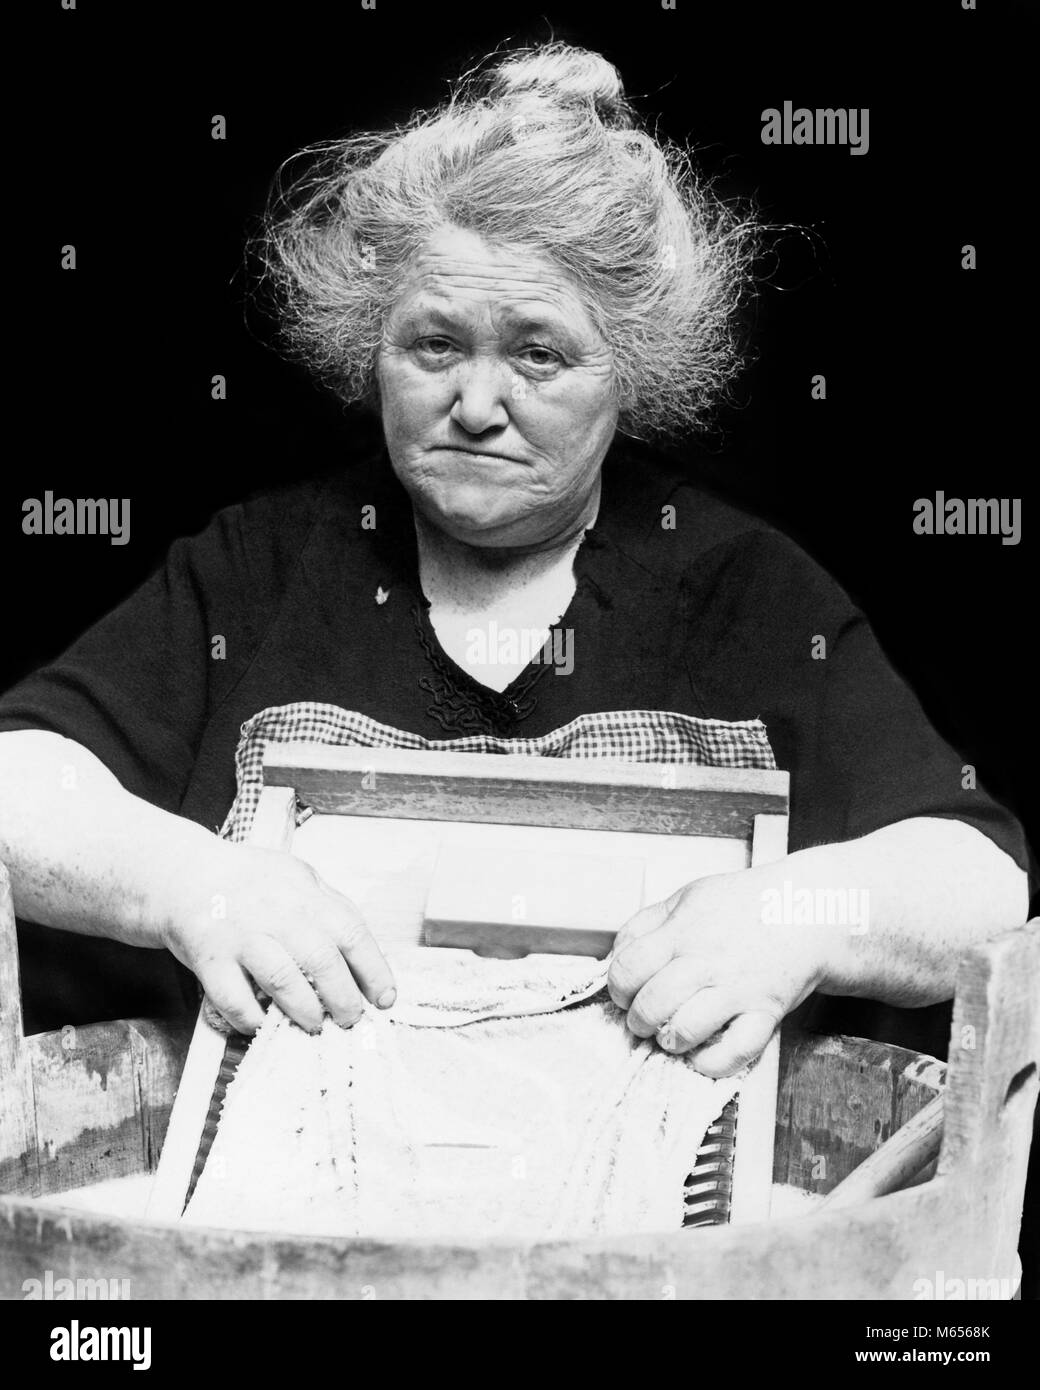 1930s DEPRESSION ERA SENIOR WOMAN SAD FACIAL EXPRESSION WASHING CLOTHES LAUNDRY ON SCRUBBING WASHBOARD LOOKING AT - Stock Image